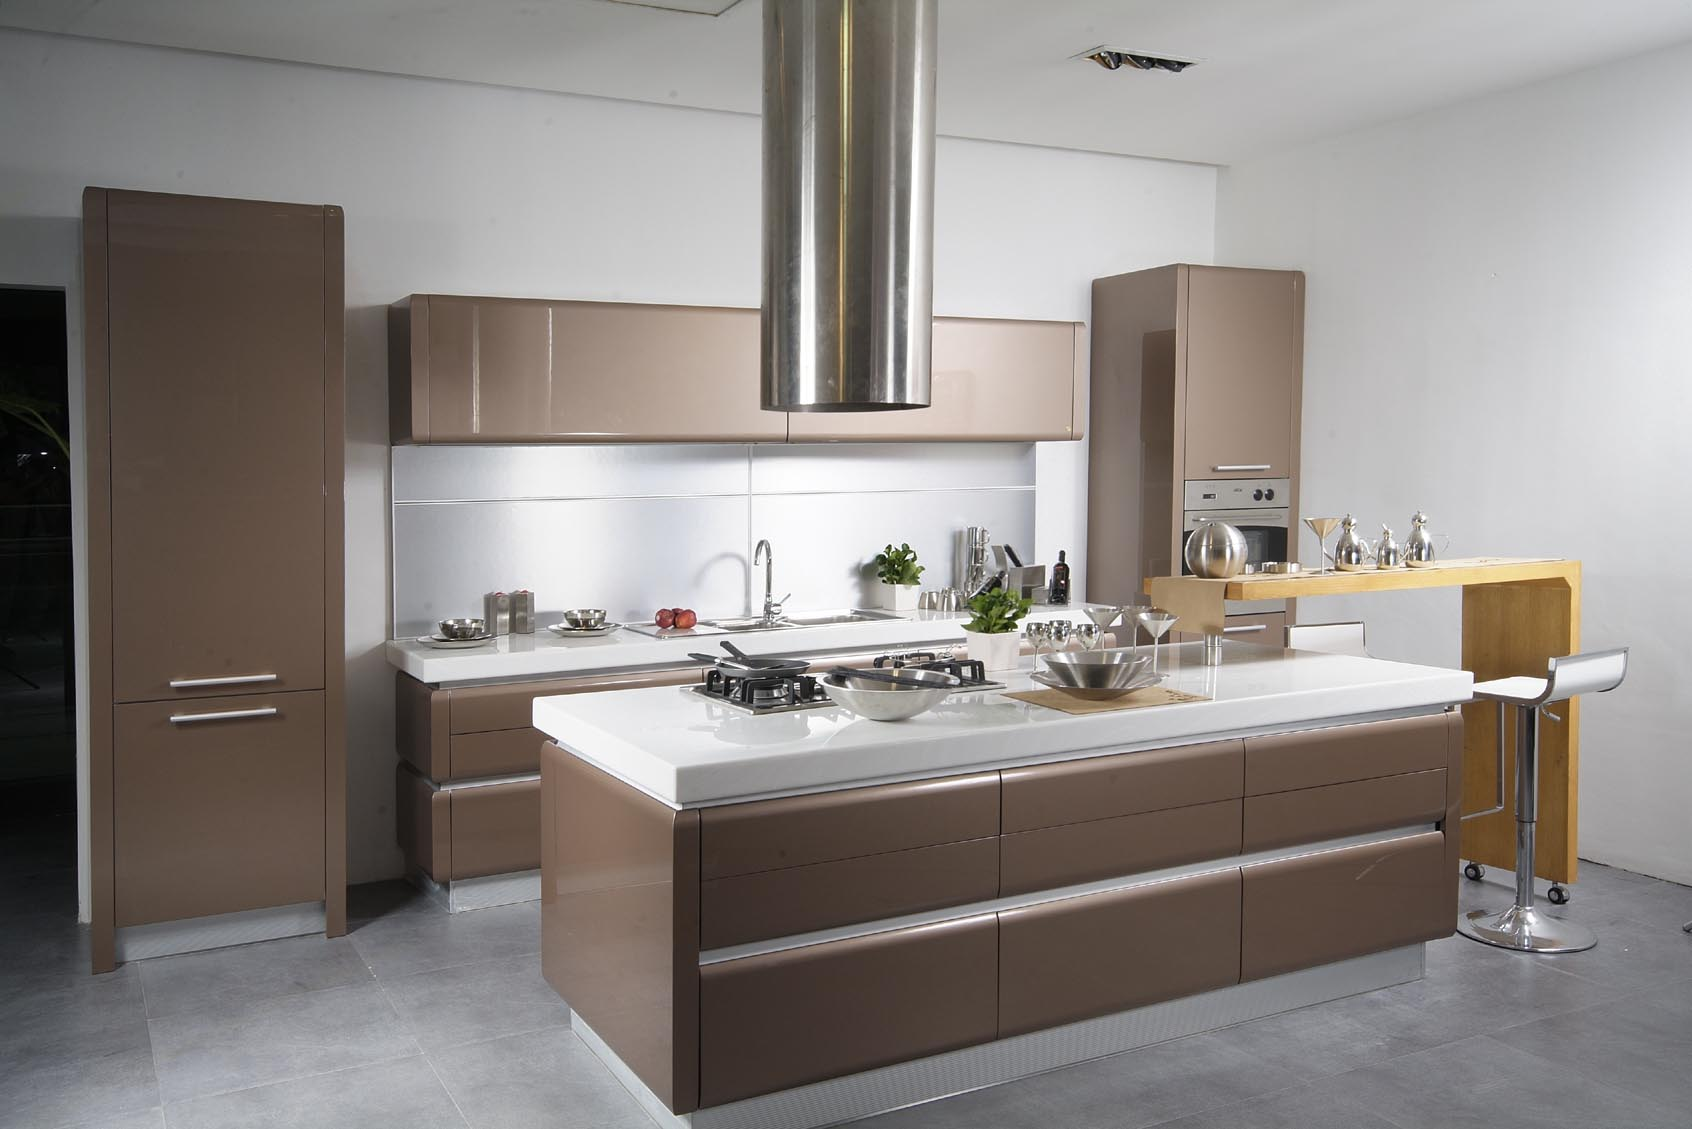 Small Modern Kitchen Units modern kitchen furniture, 10 amazing modern kitchen cabinet styles